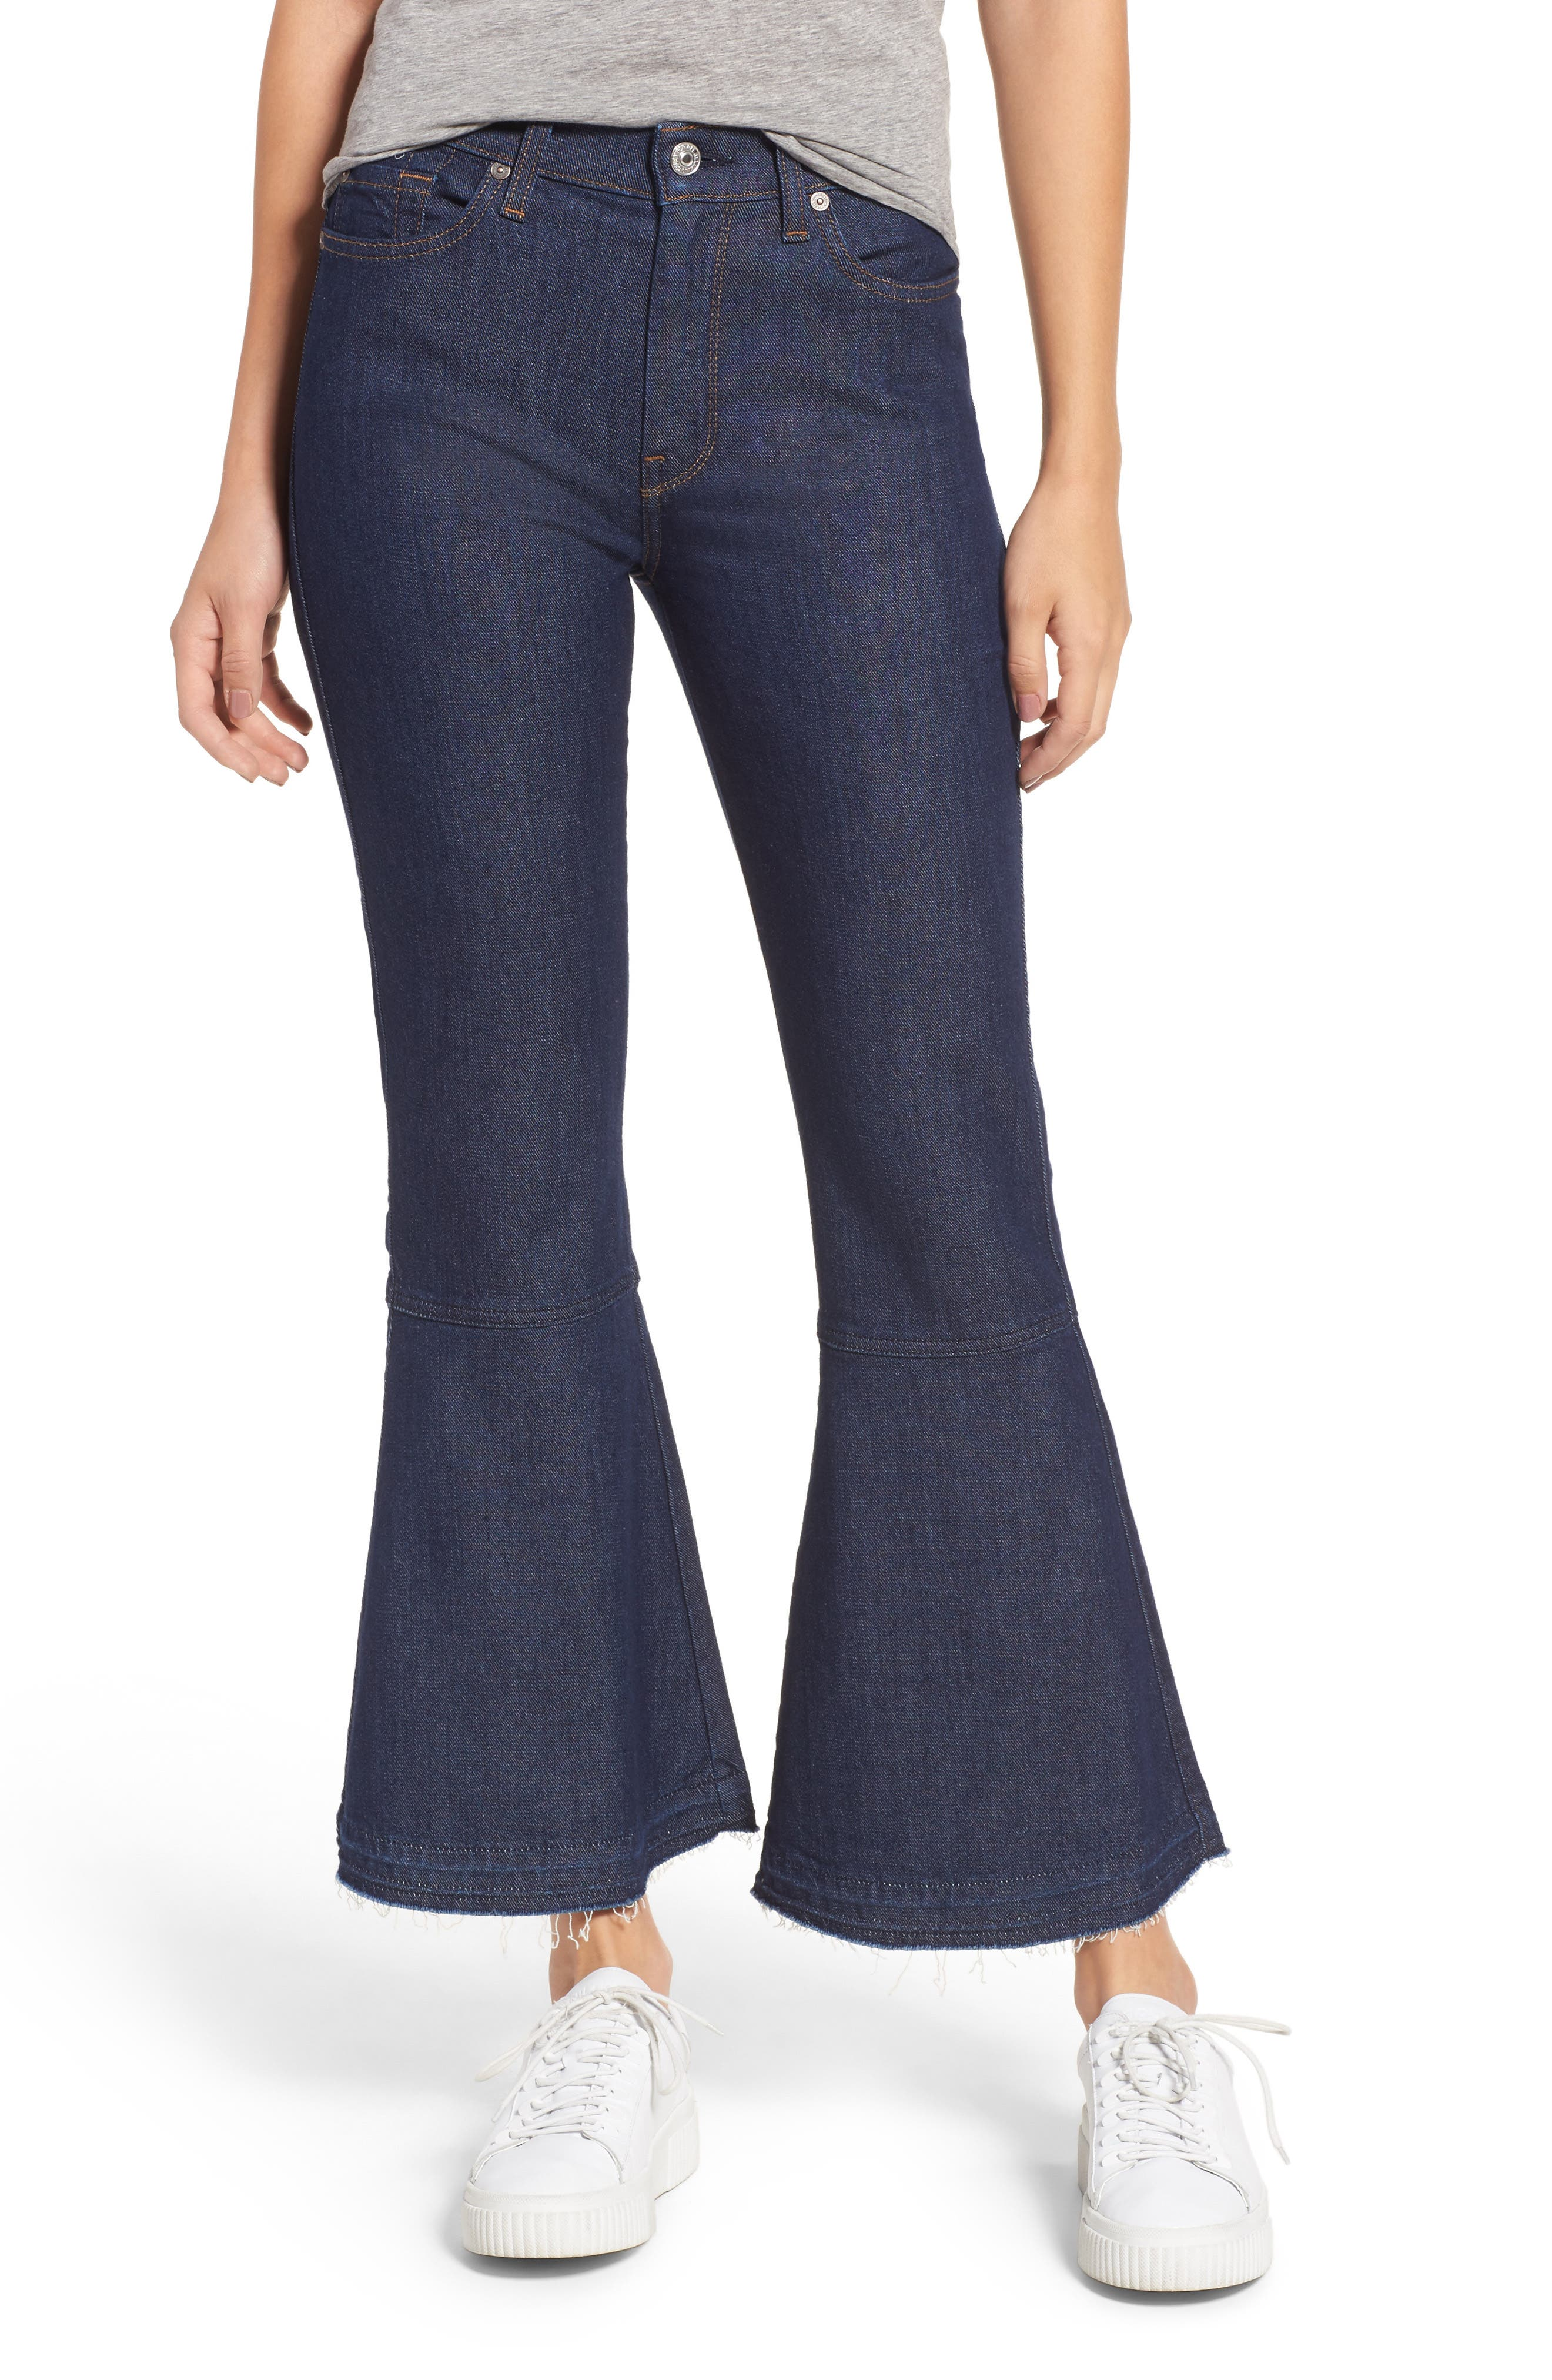 Priscilla High Waist Crop Flare Jeans,                         Main,                         color, Wilshire Rinse